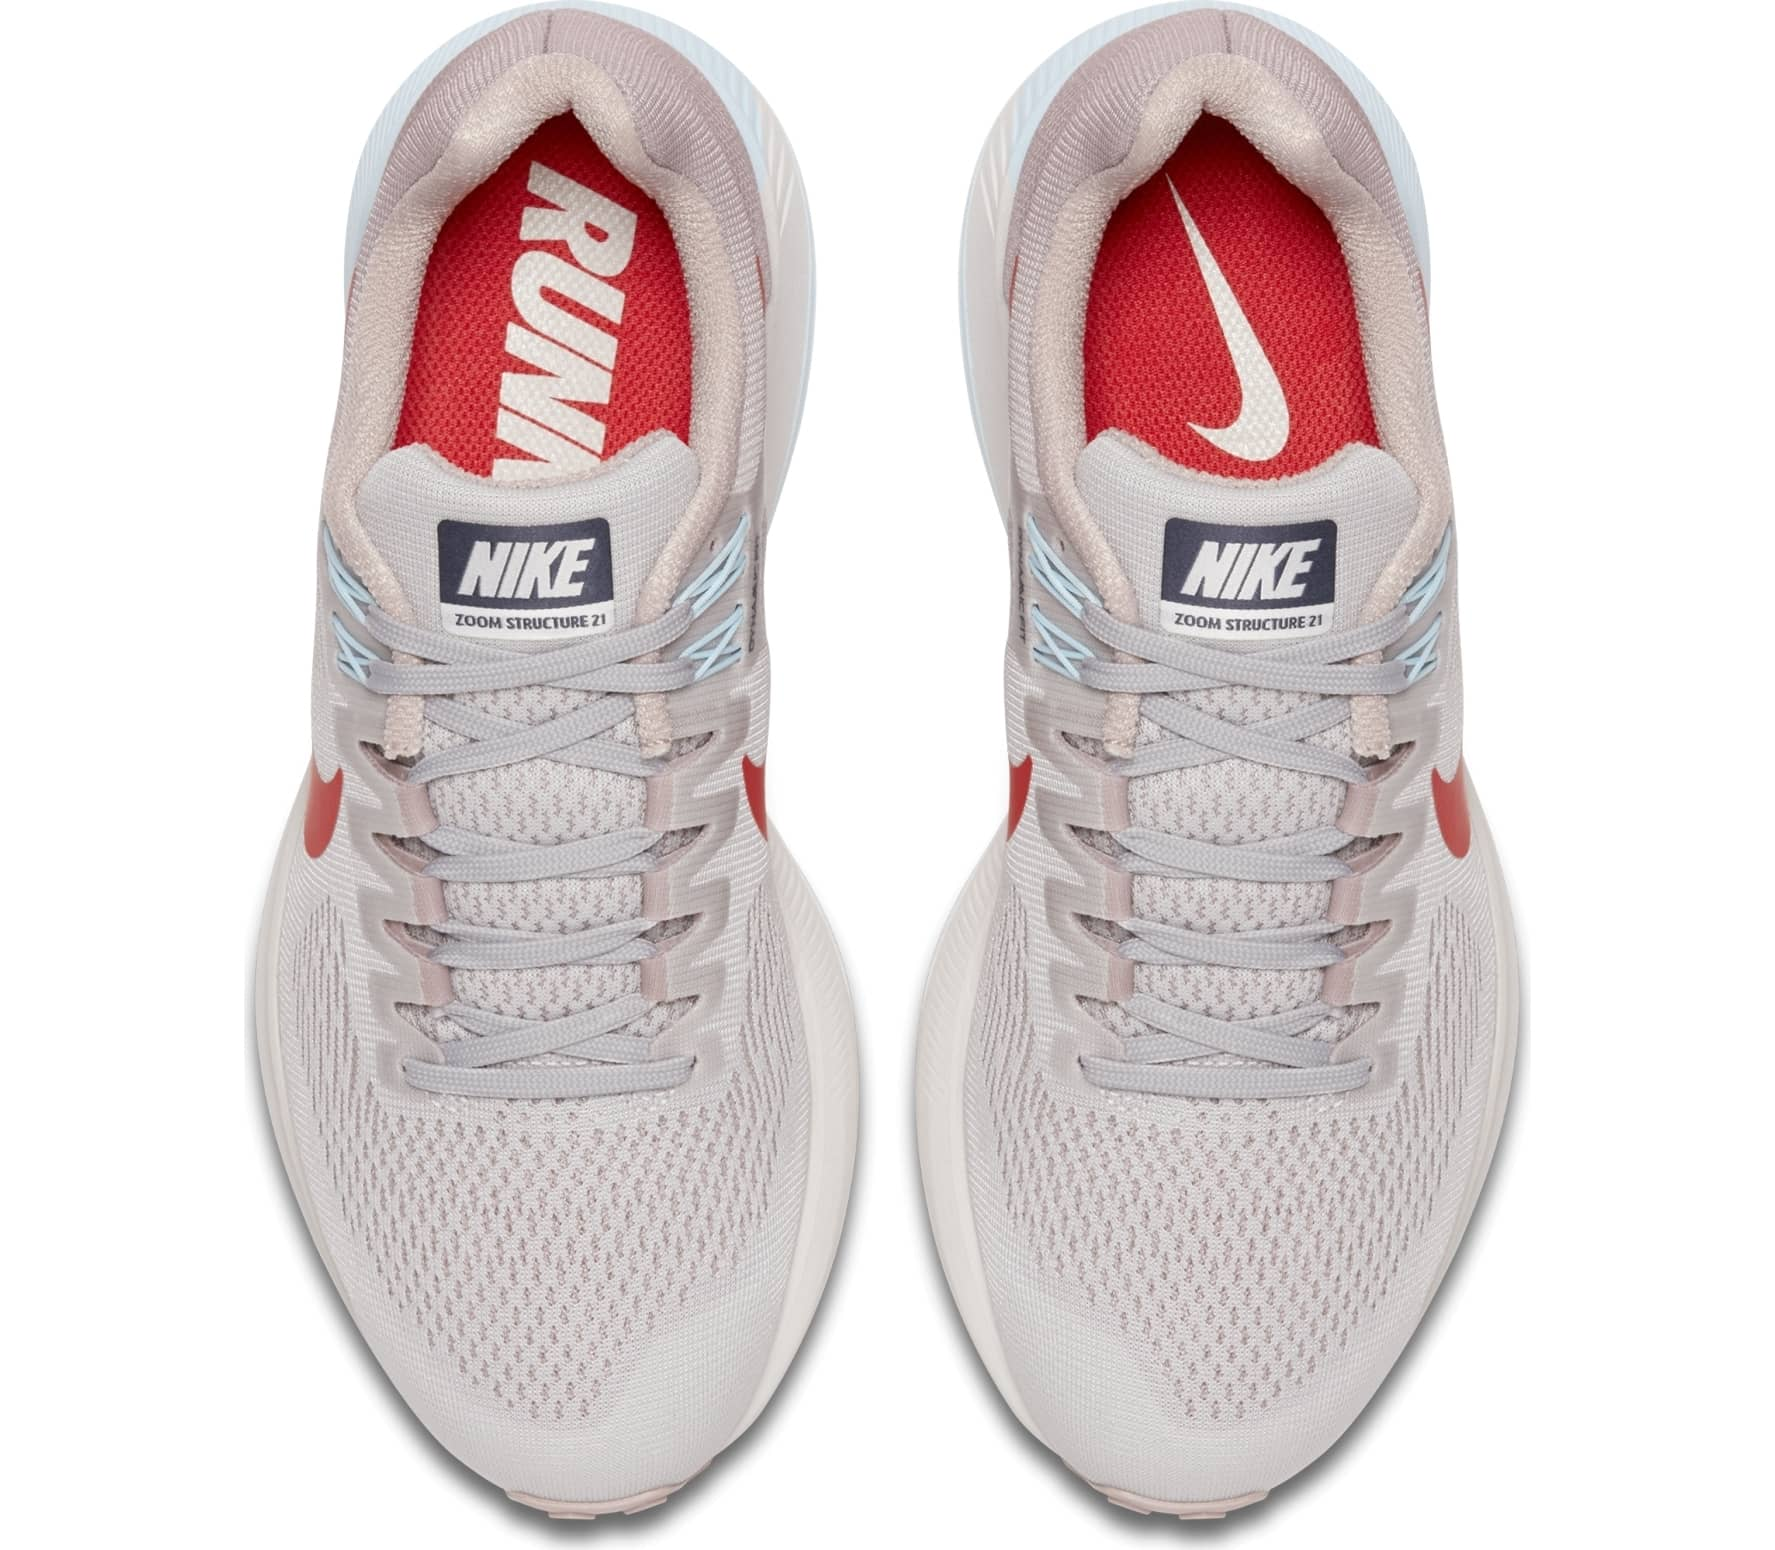 finest selection 4fc65 4ccfd Nike - Air Zoom Structure 21 womens running shoes (pinkred